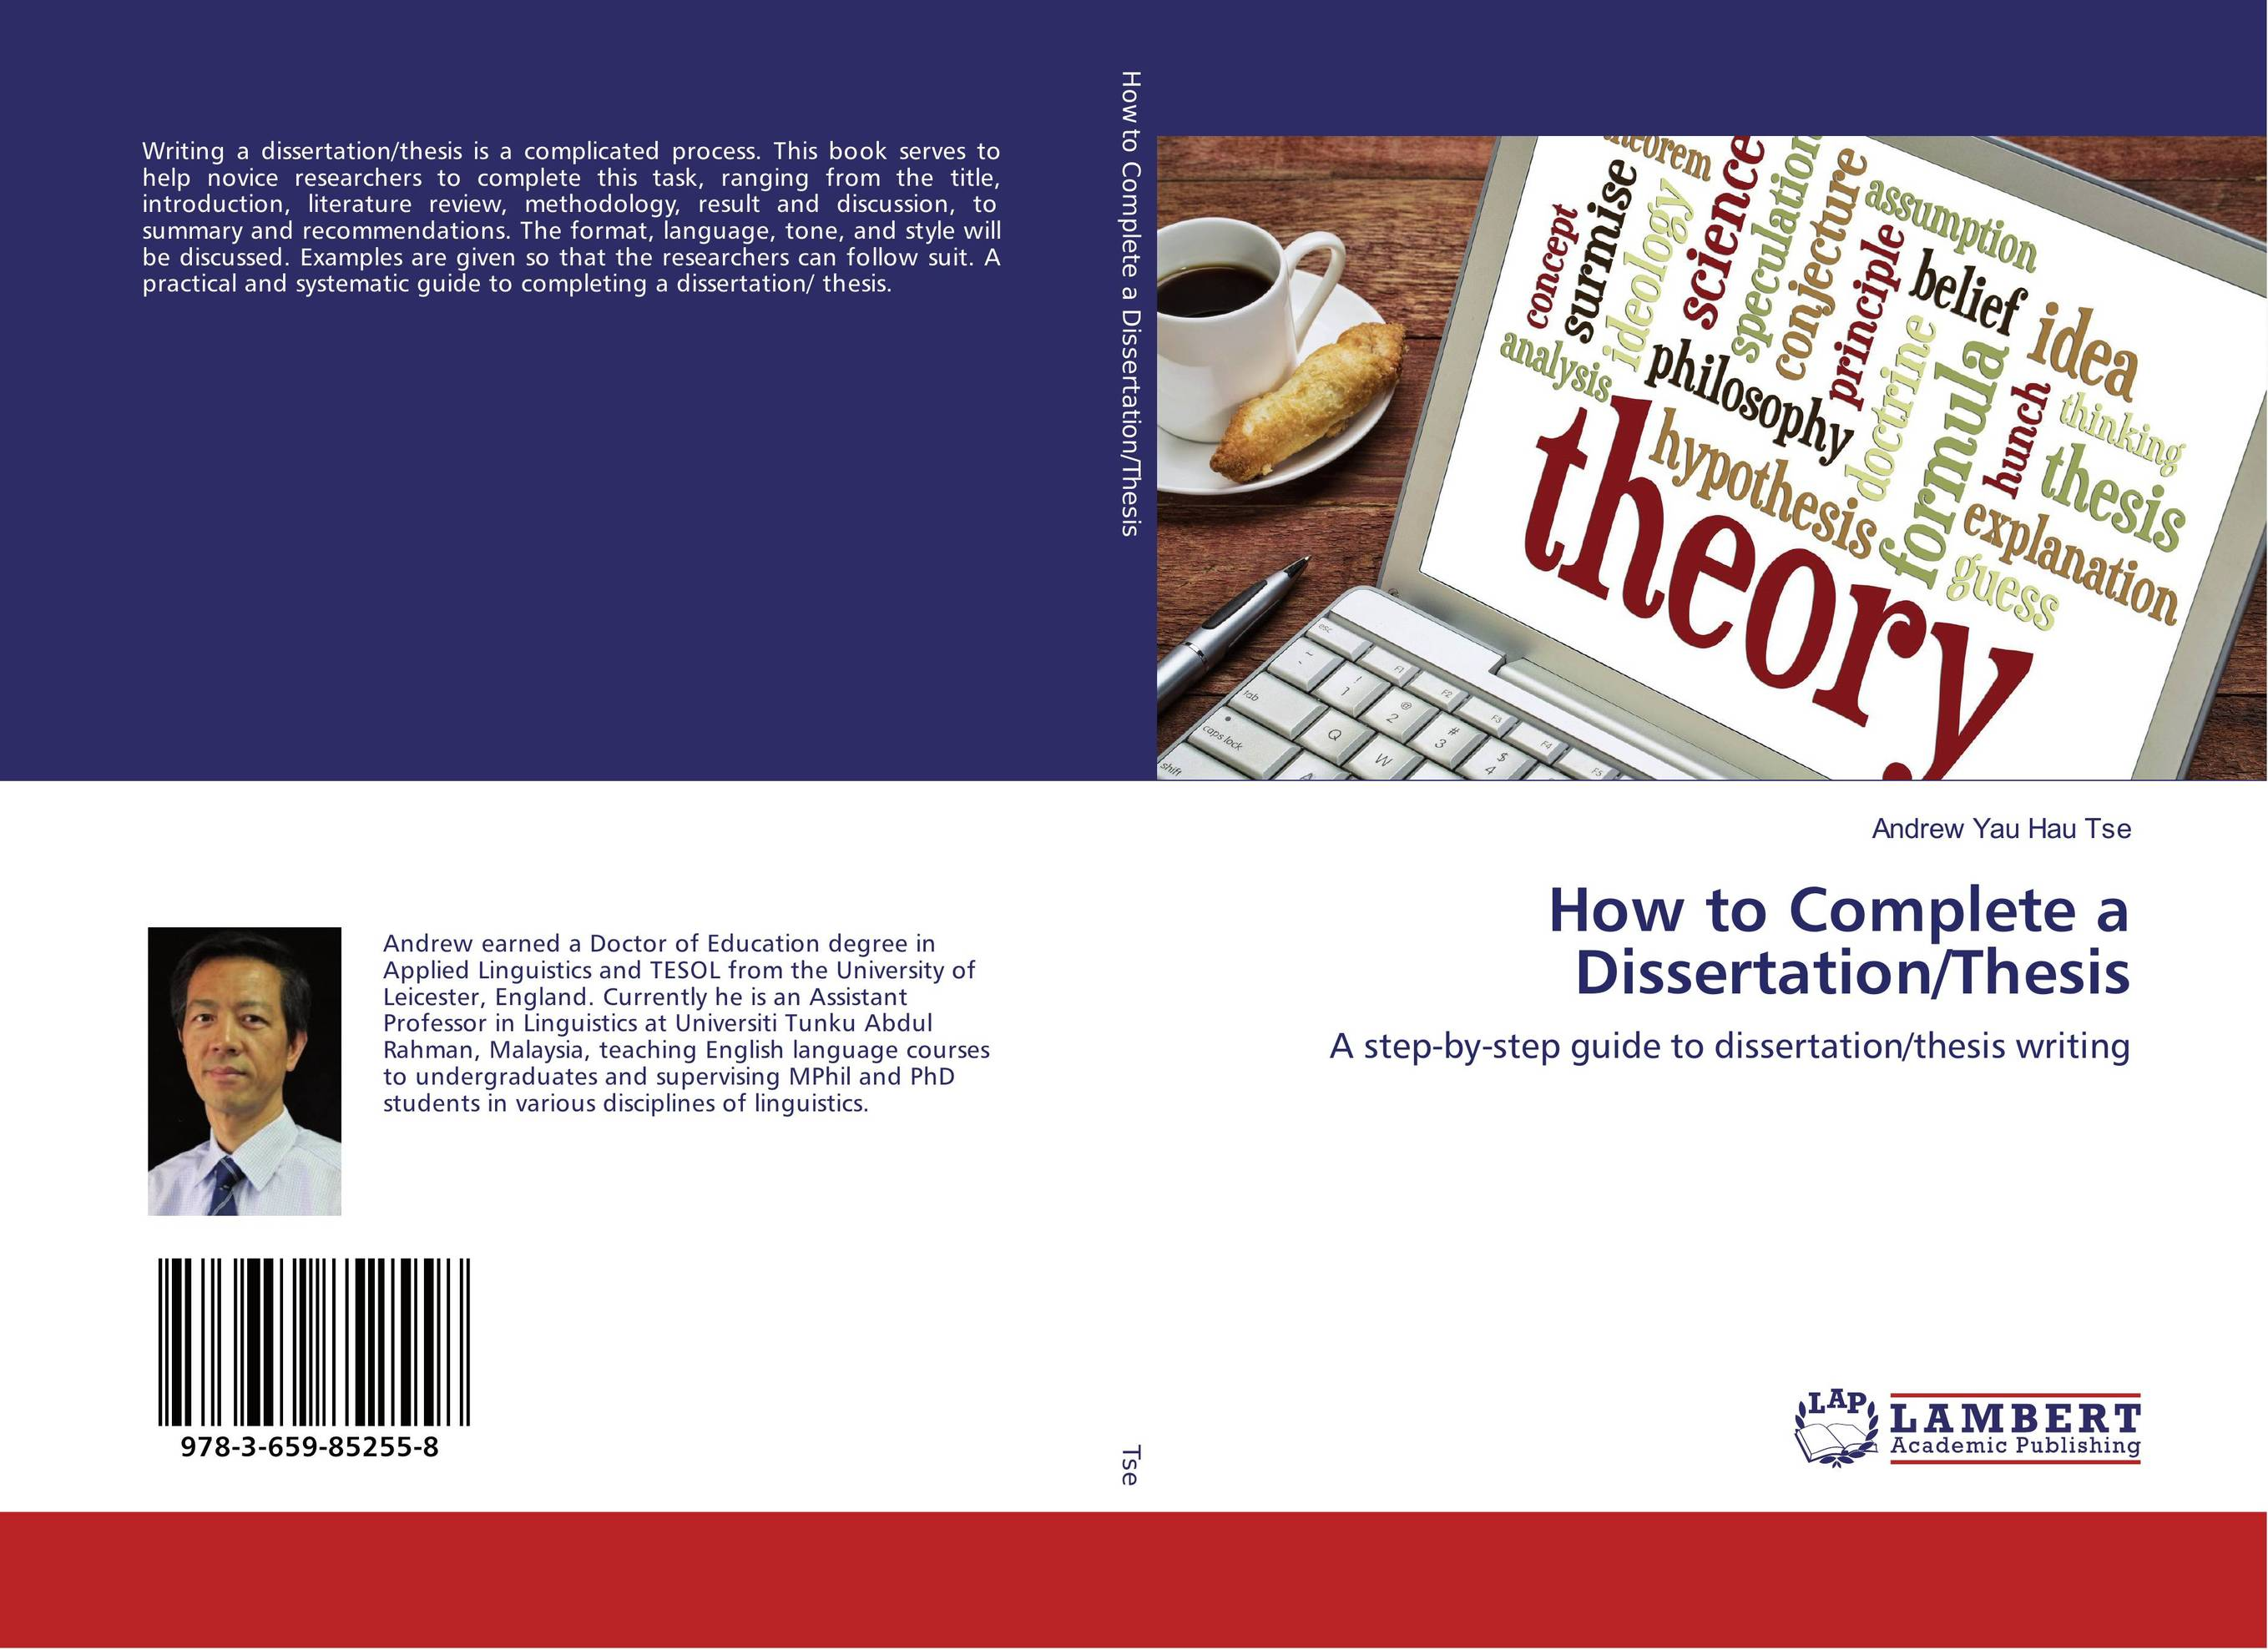 write search strategy dissertation The write search strategy dissertation main differences between abstracts and introductions dissertation binding service reading are as follows:a write search strategy dissertation free practical guide to assist in the crafting, implementing and defending of a dissertation binding service uk graduate school thesis or write search strategy.